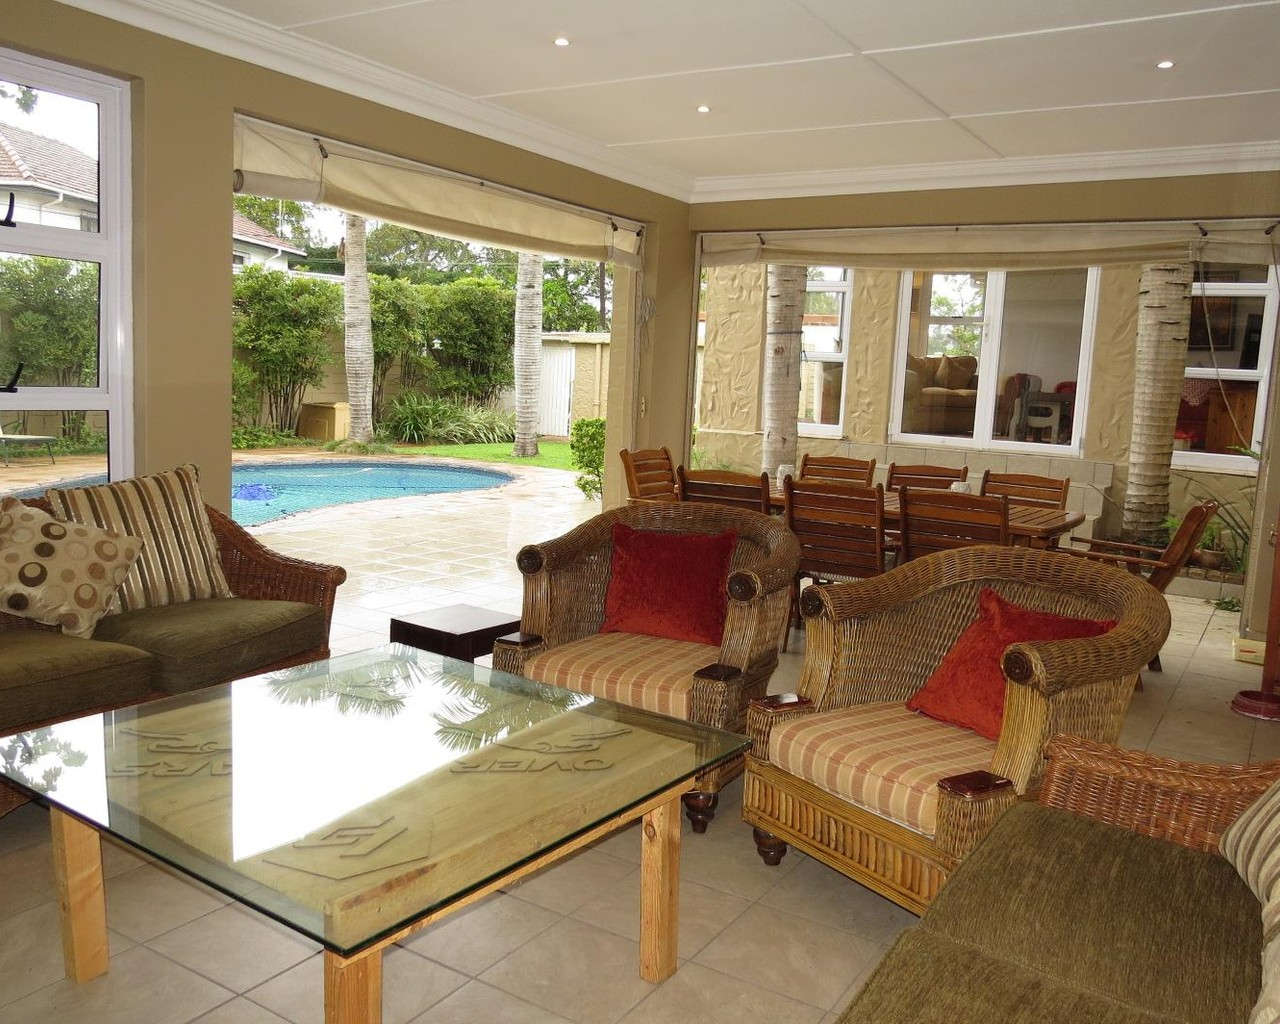 3 Bedroom House For Sale In Durban North Tyson Properties